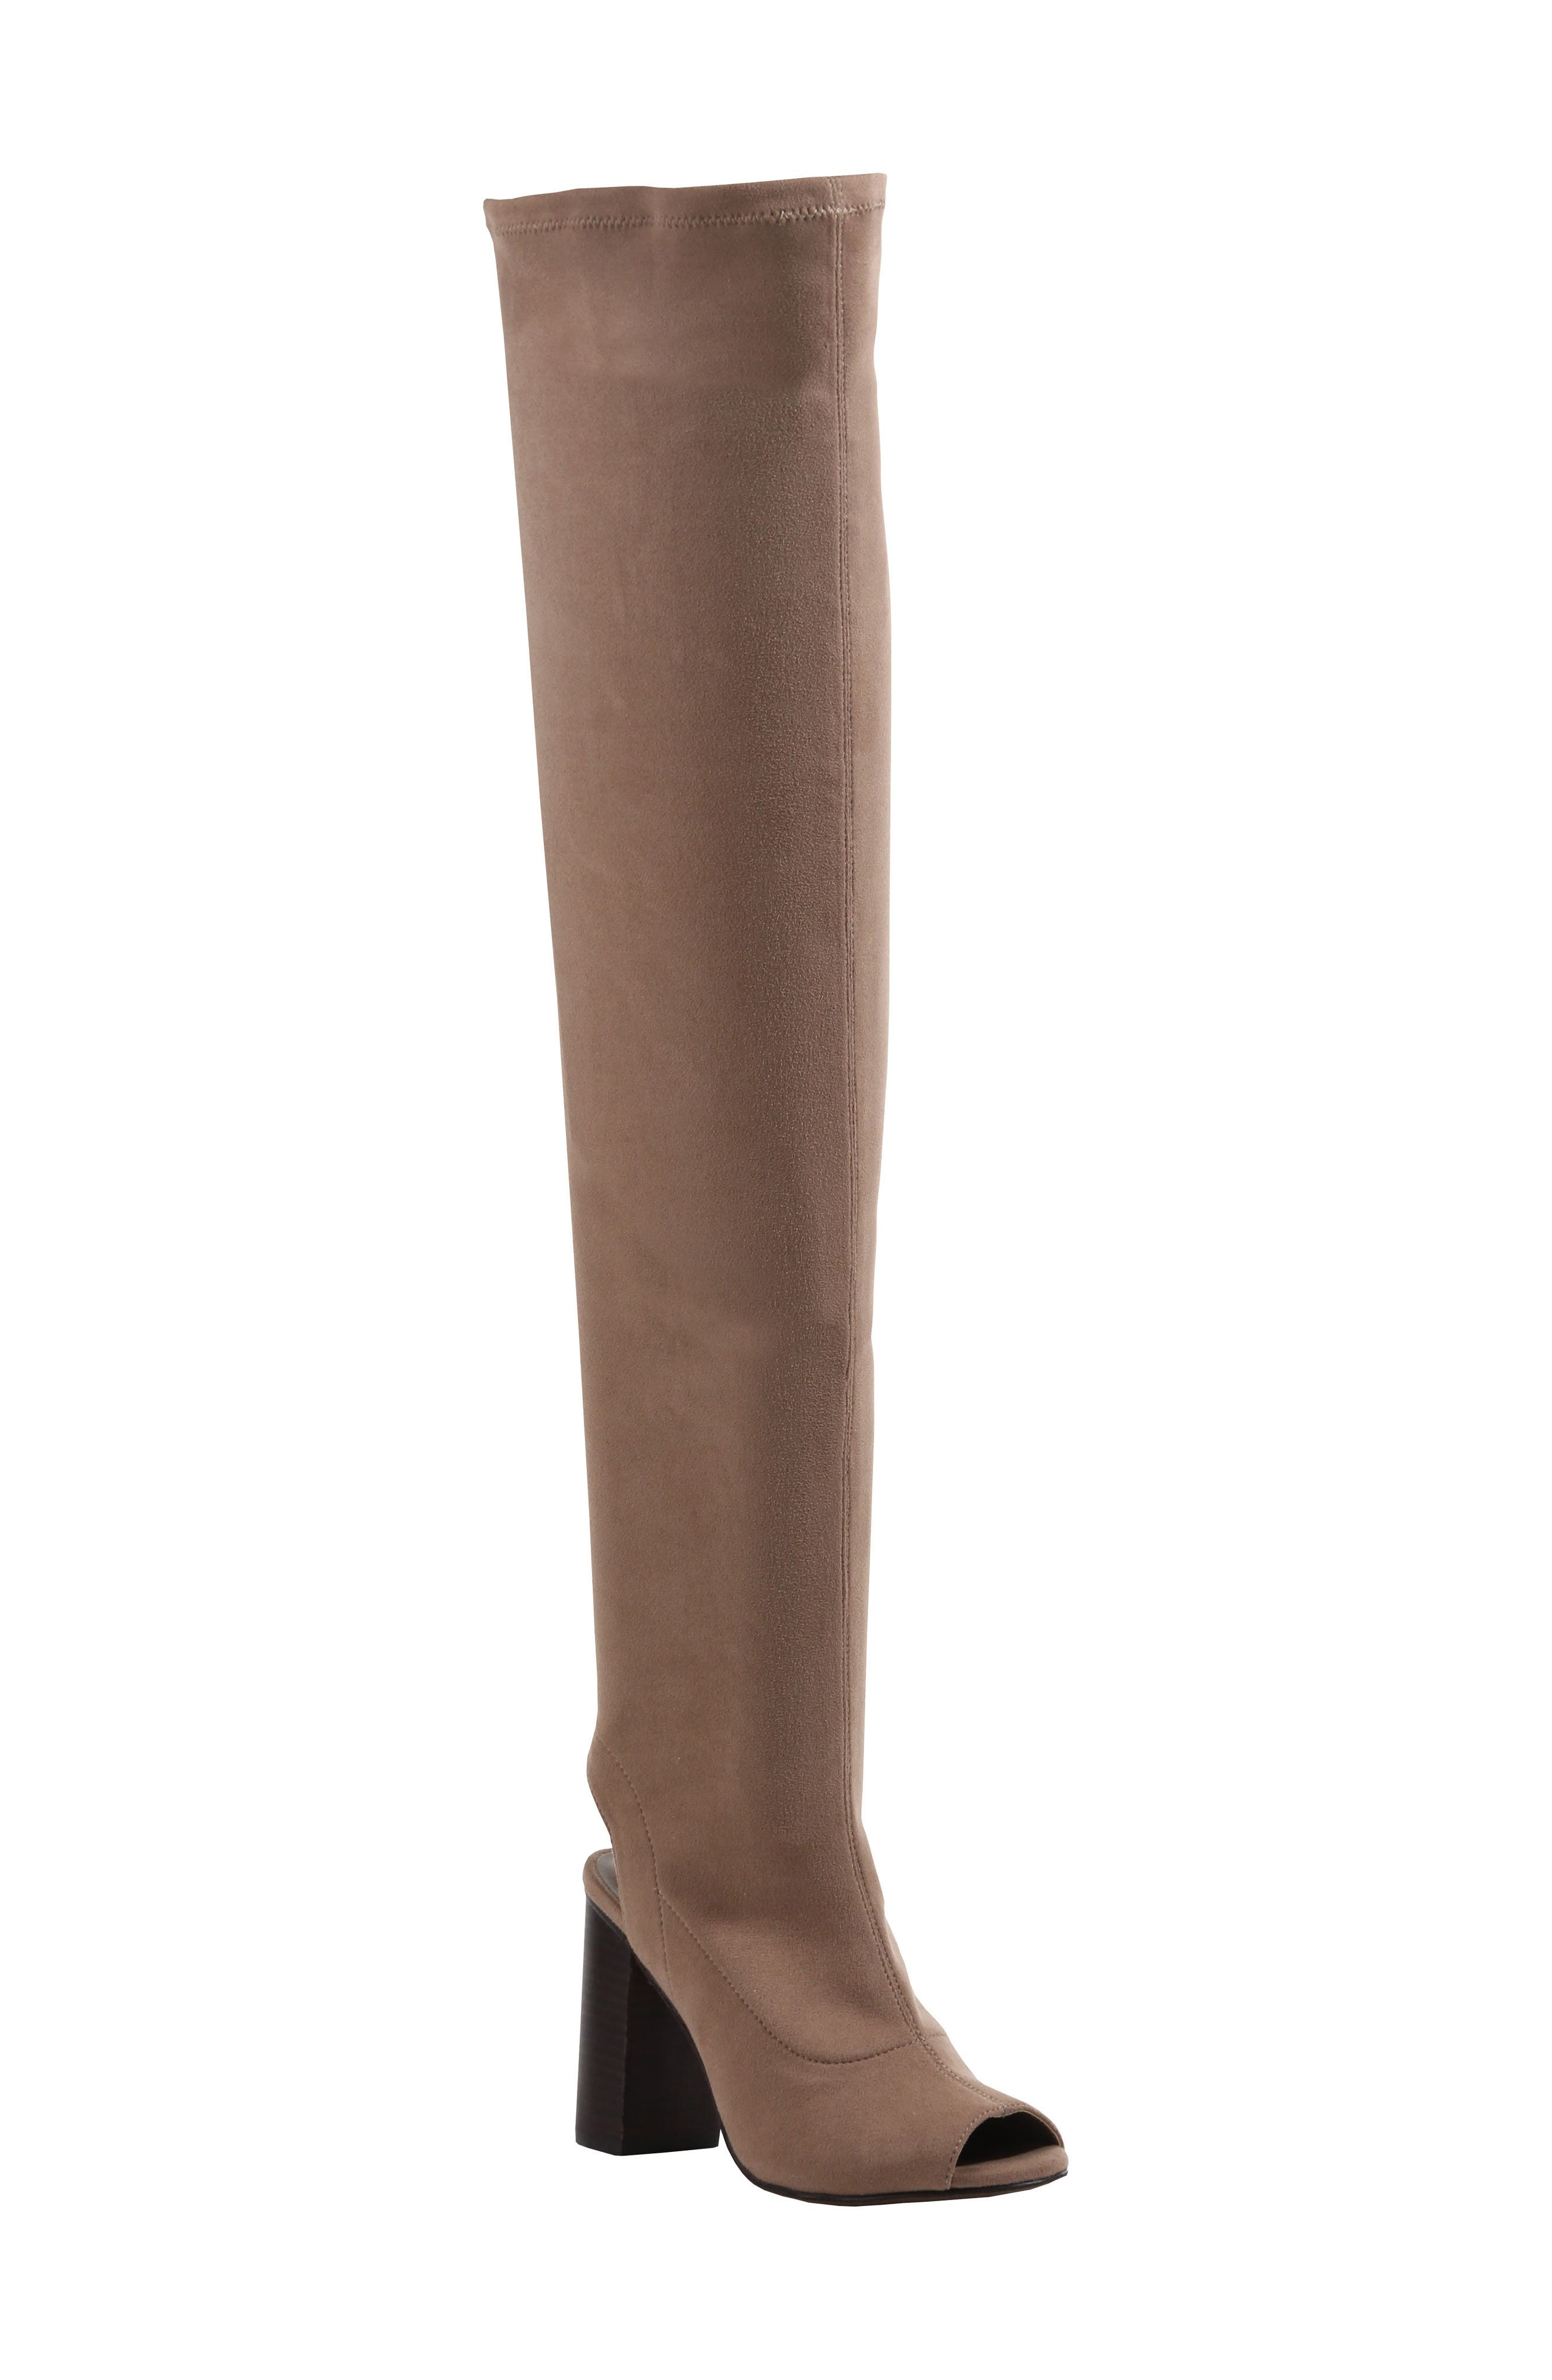 Main Image - Mia Robyn Cutout Over the Knee Boot (Women)